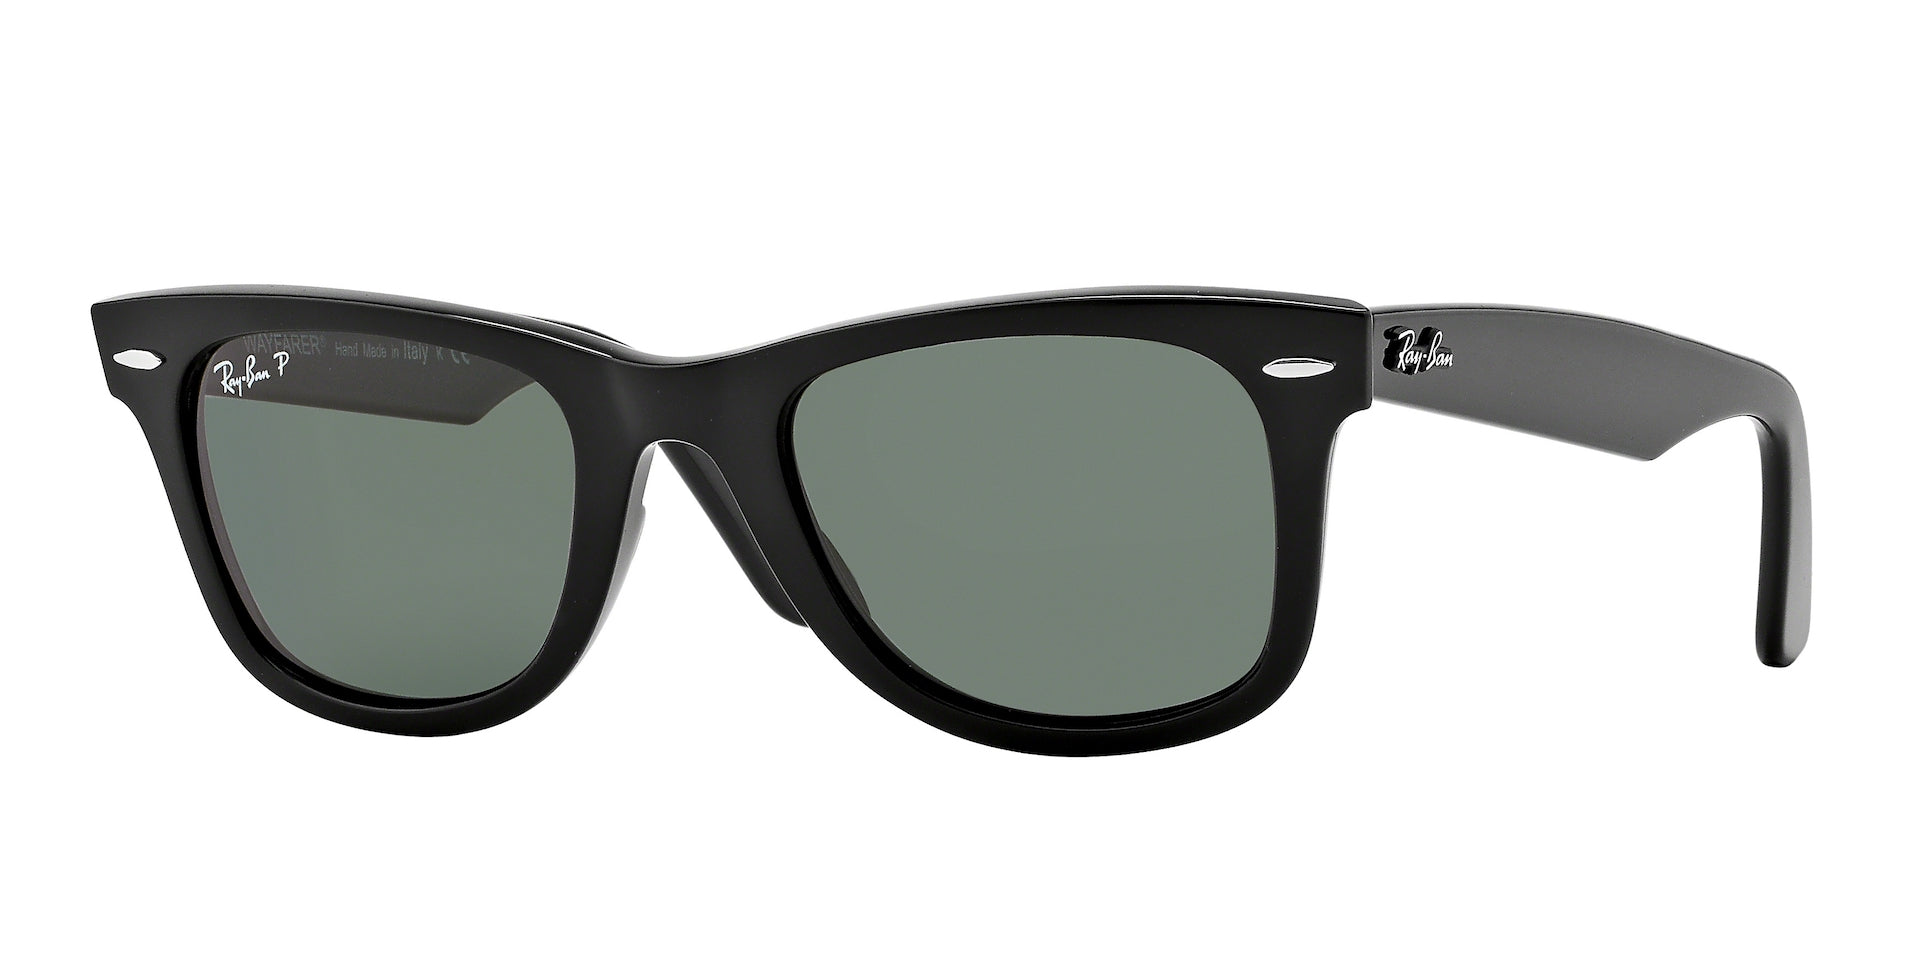 f99aaaf902 Ray-Ban - Vision Works Optometrists